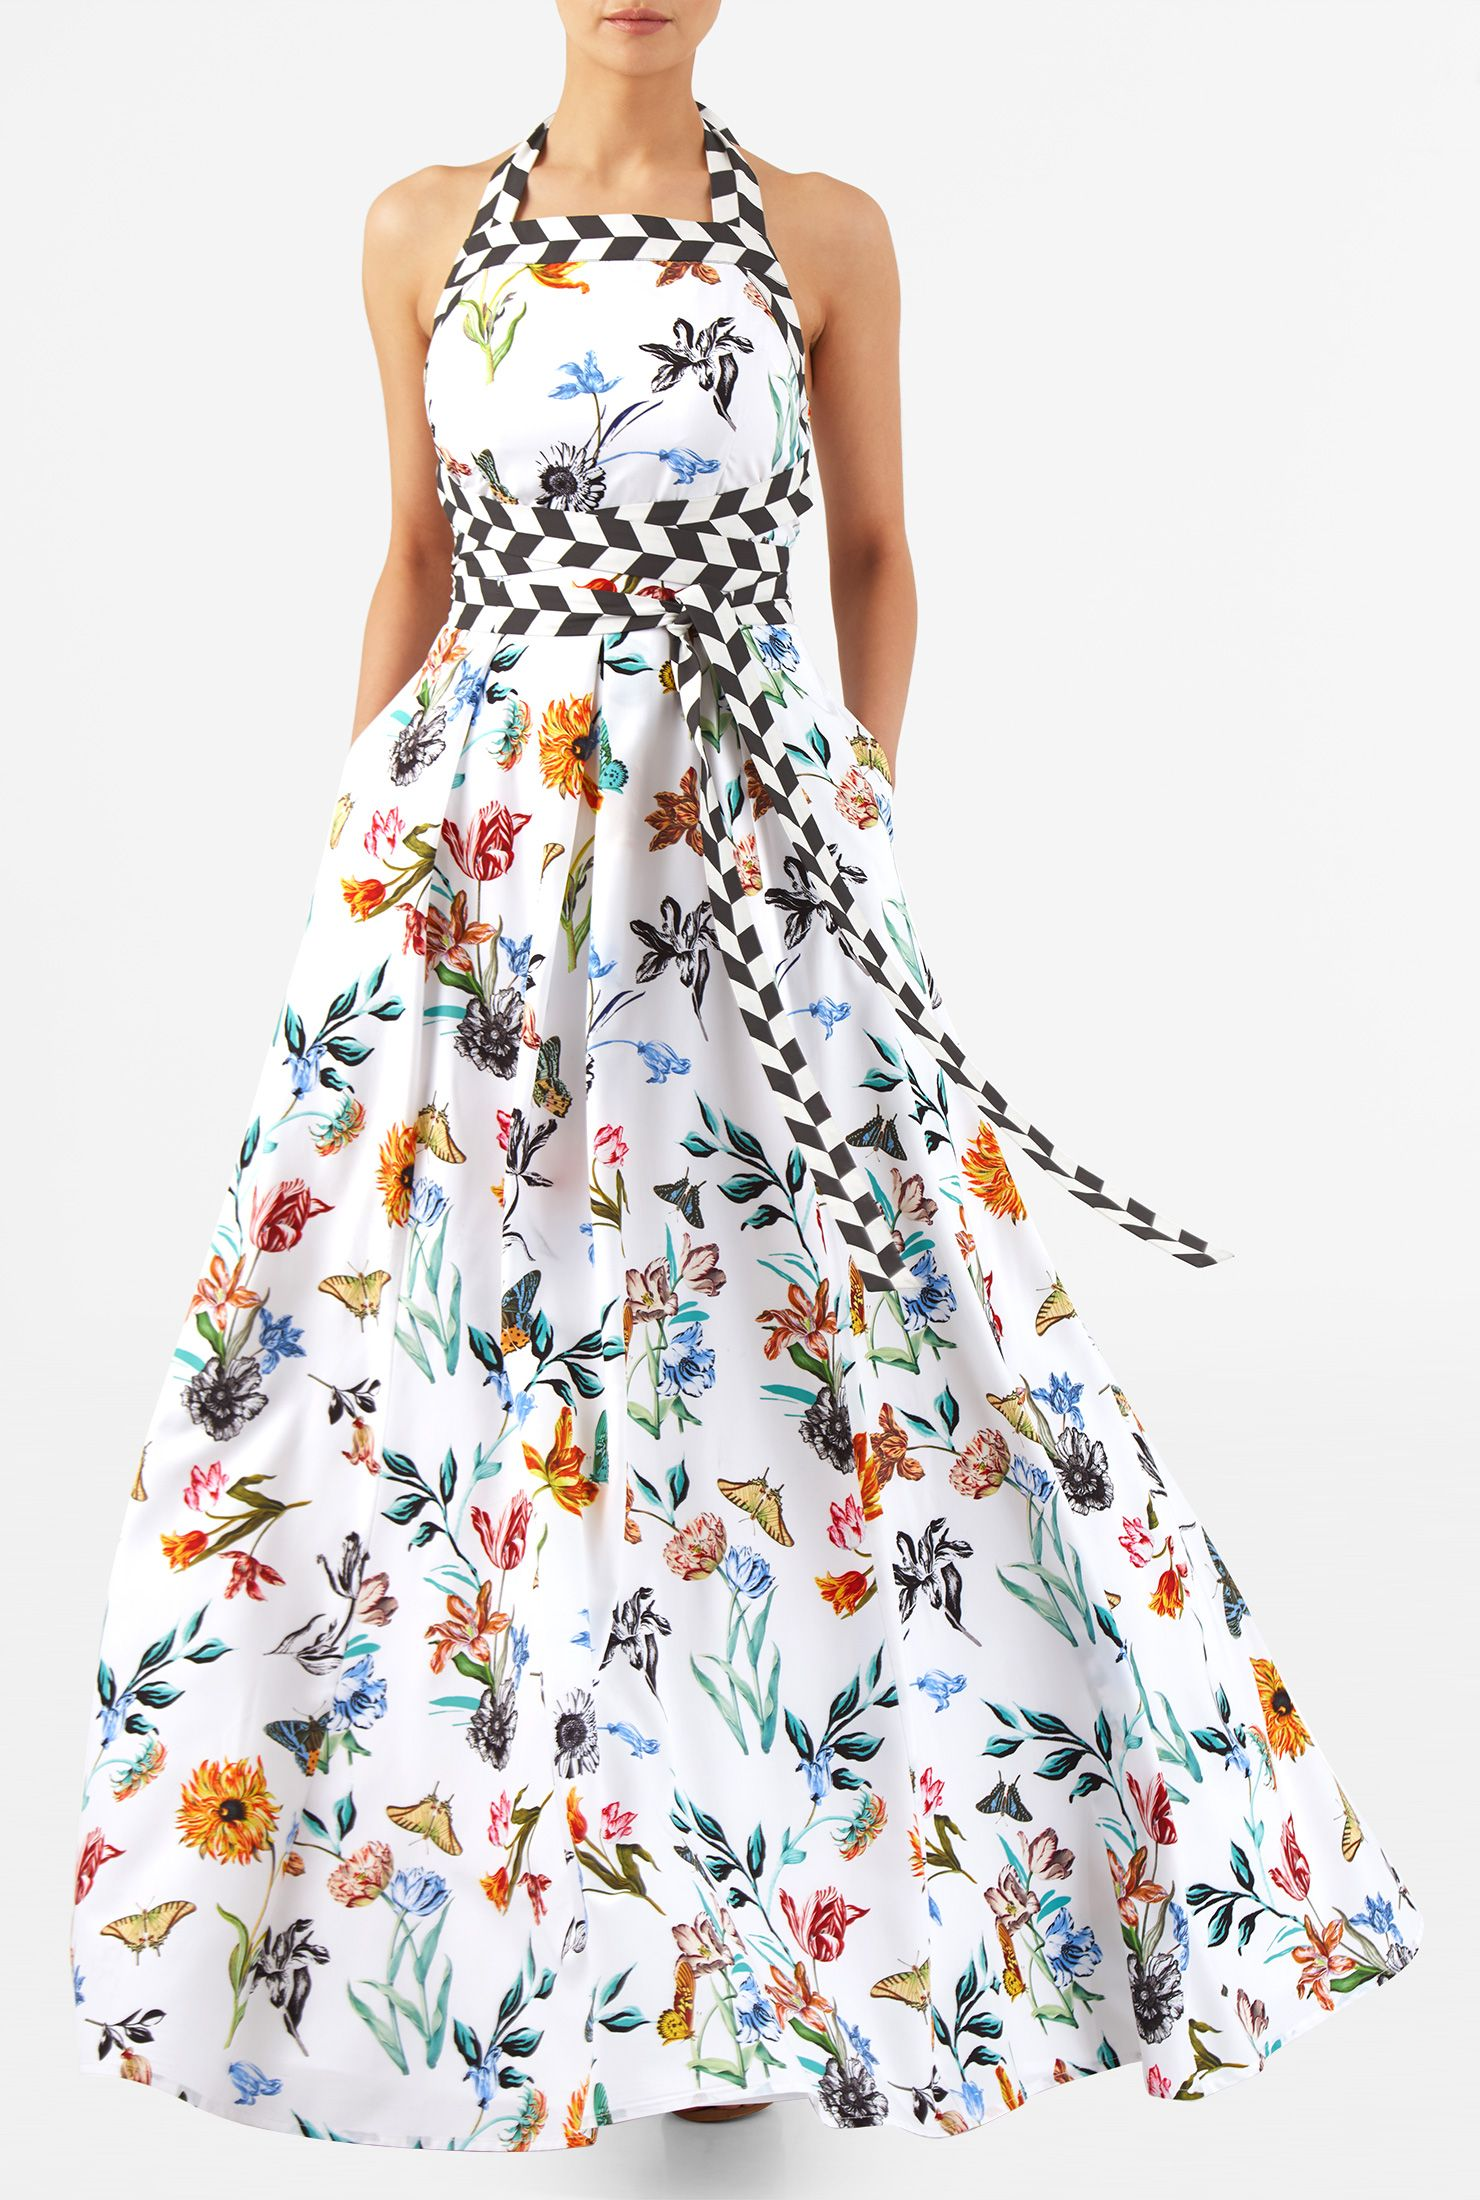 fe317c3855b Our floral butterfly print crepe maxi dress is cut at floor length with  attached long ties in contrast geo print to wrap the empire waist in a  totally ...